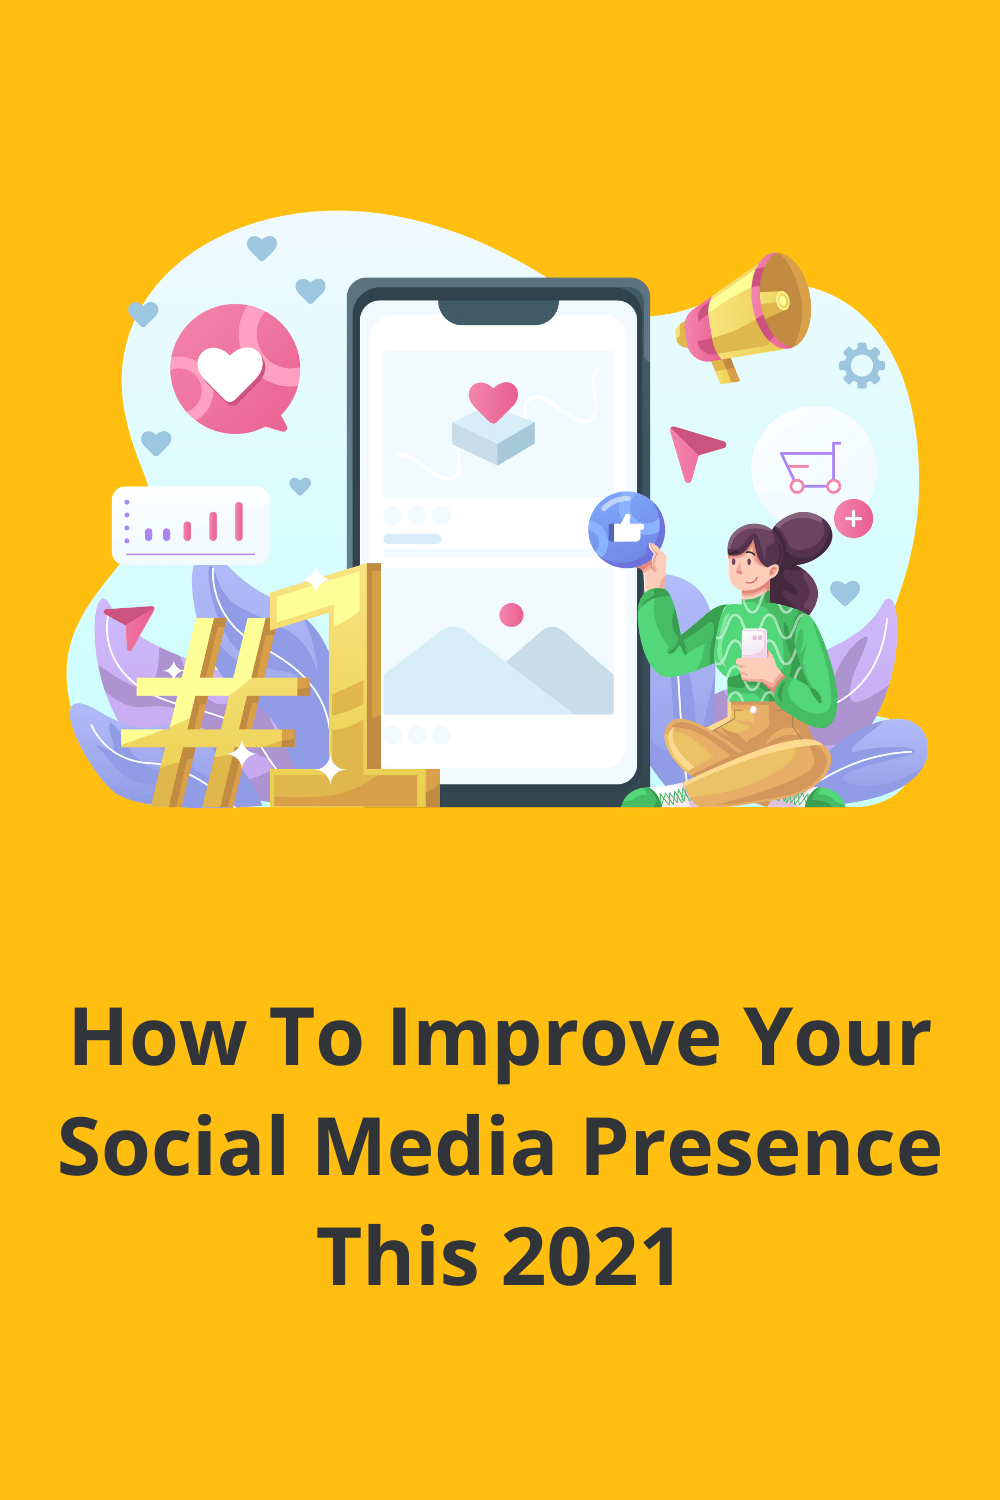 Having a strong social media presence can help you extend your reach as a content creator. Here are some ways to improve your social media presence this 2021. via @scopedesign